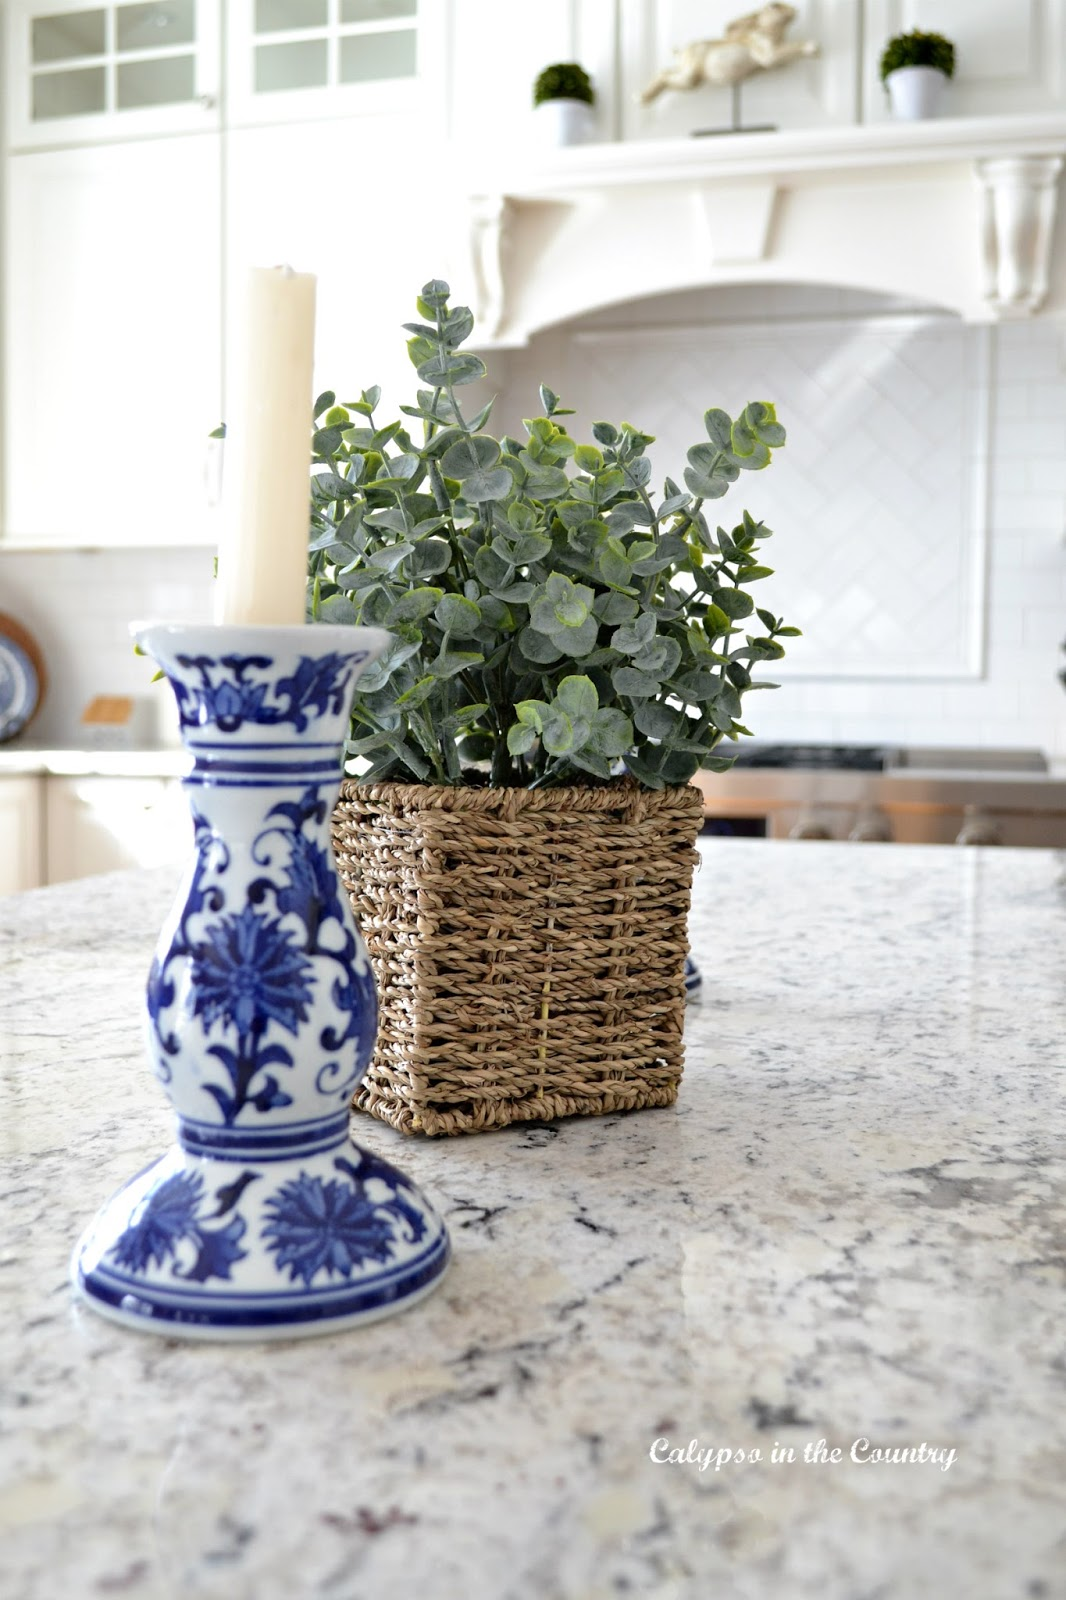 blue and white candlesticks in kitchen